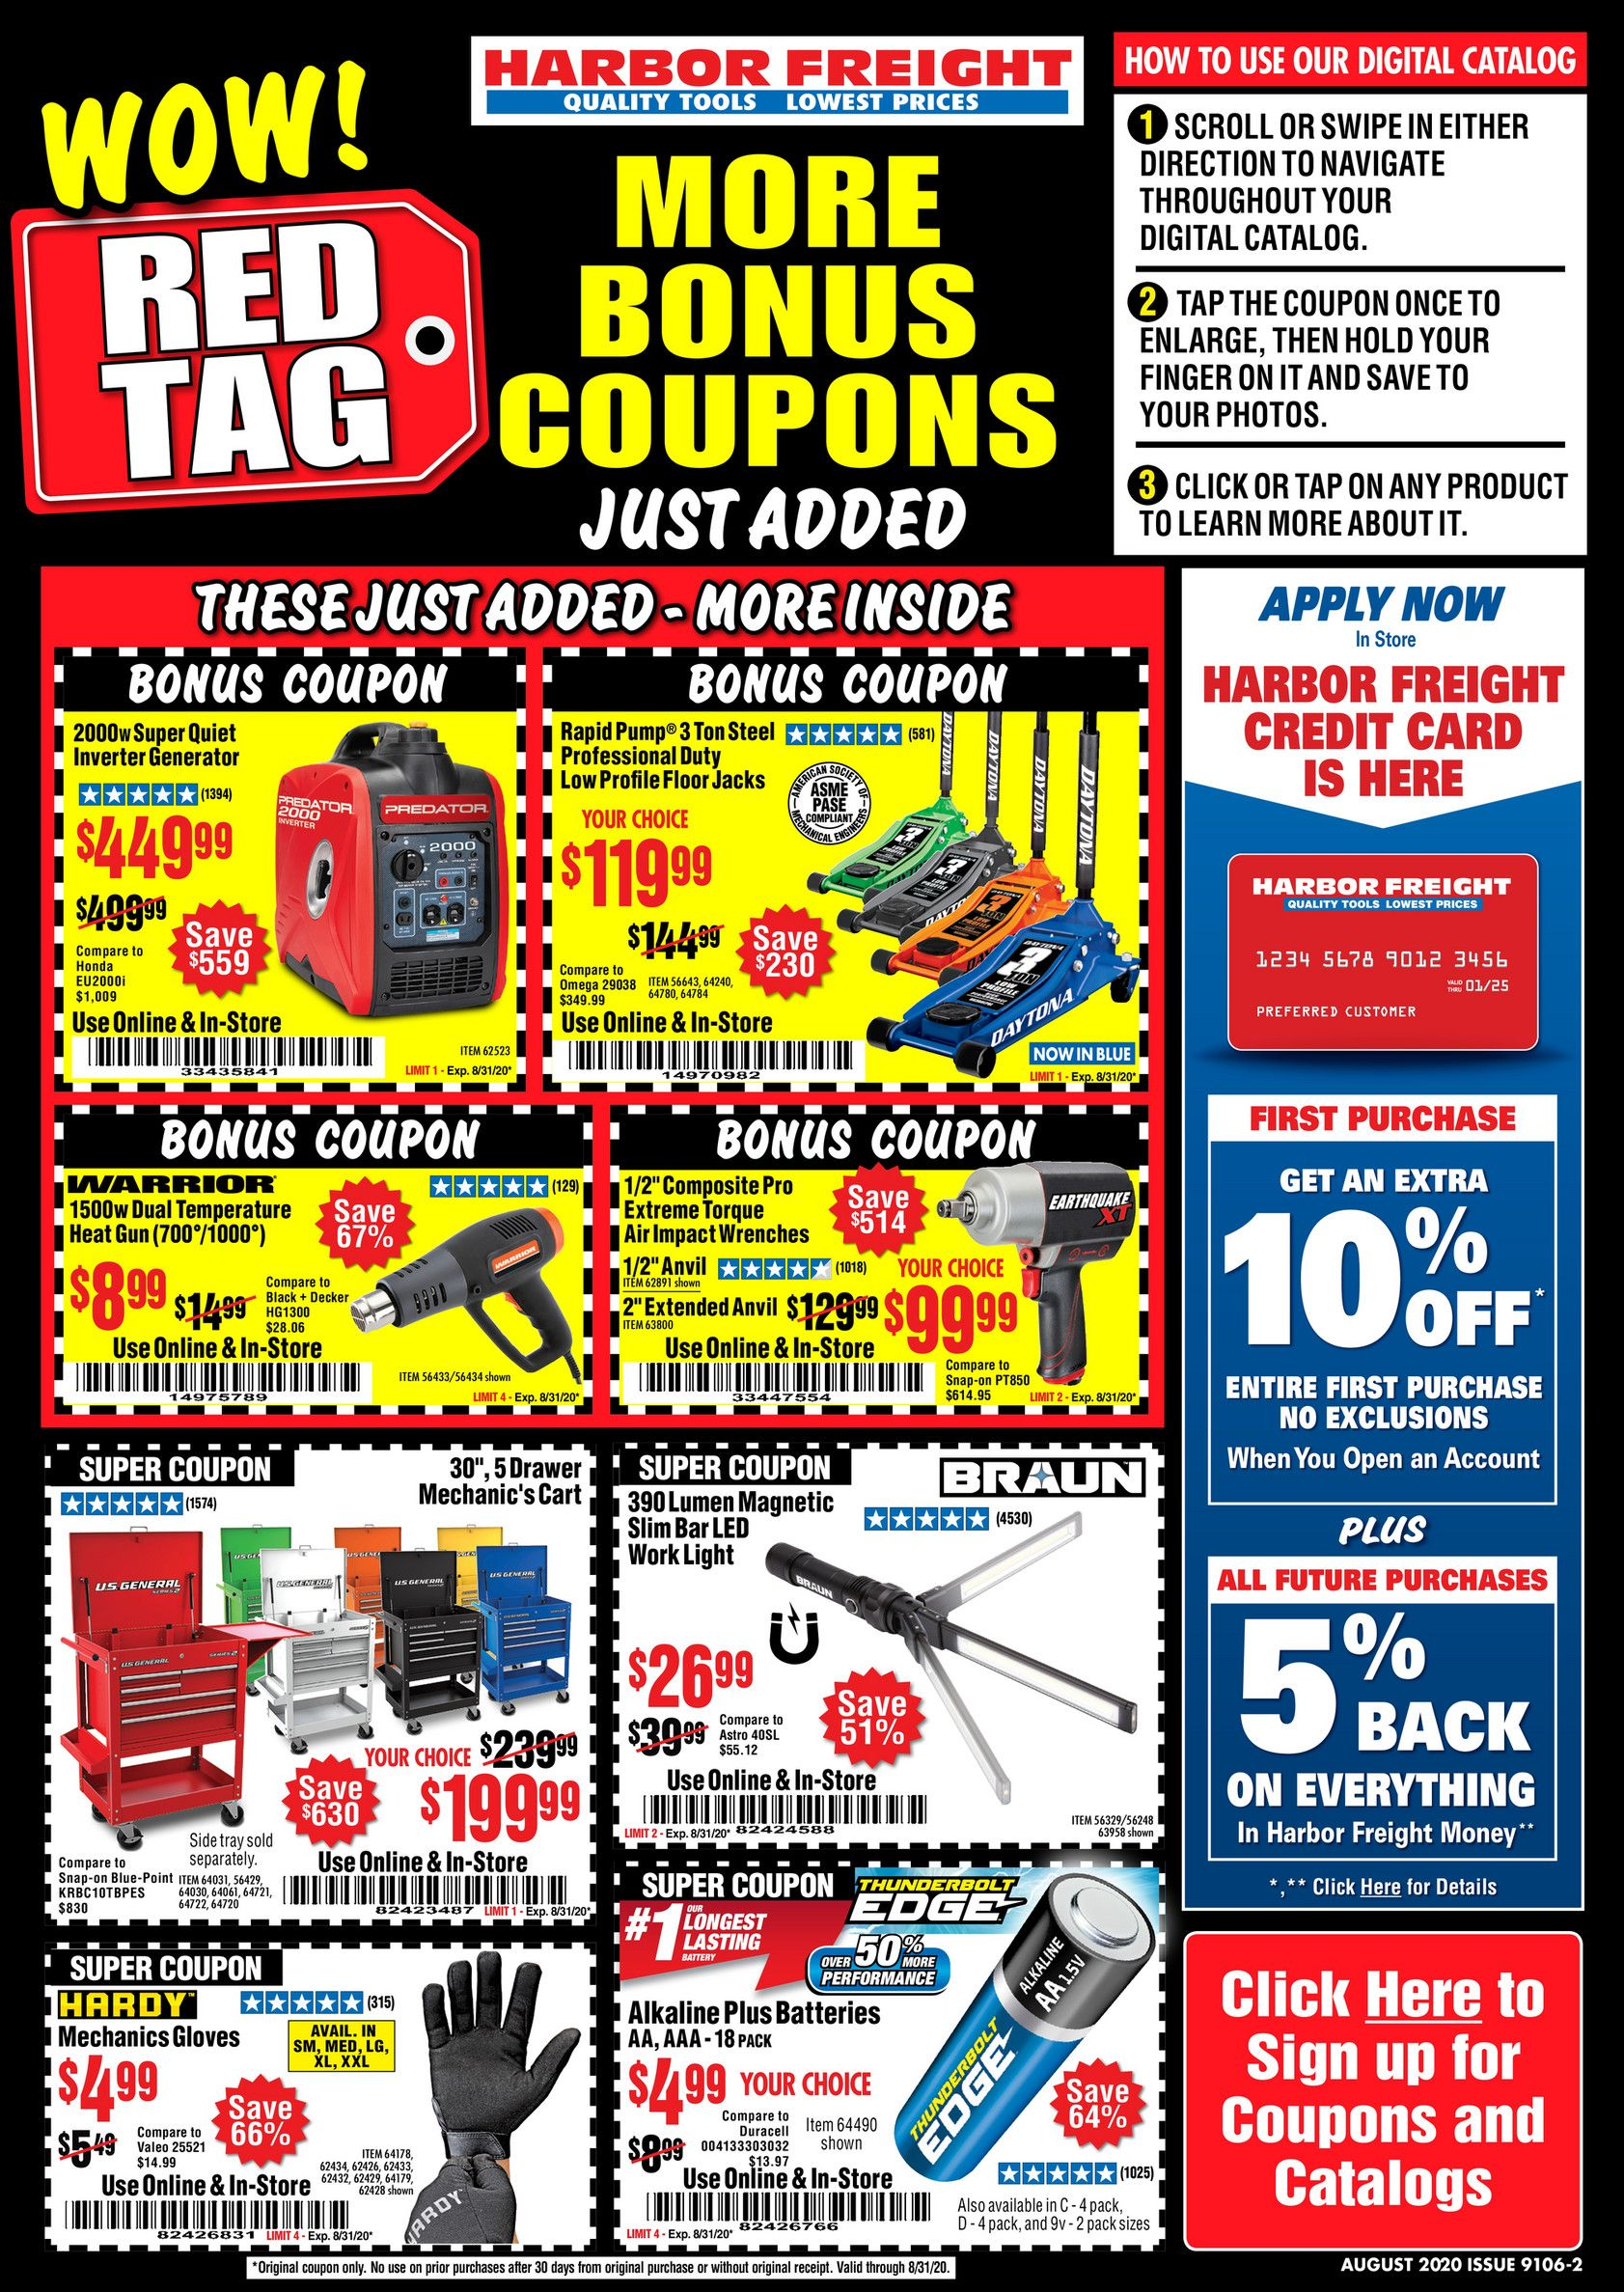 Foldable Sawhorse in 2020 Harbor freight tools, Coupons